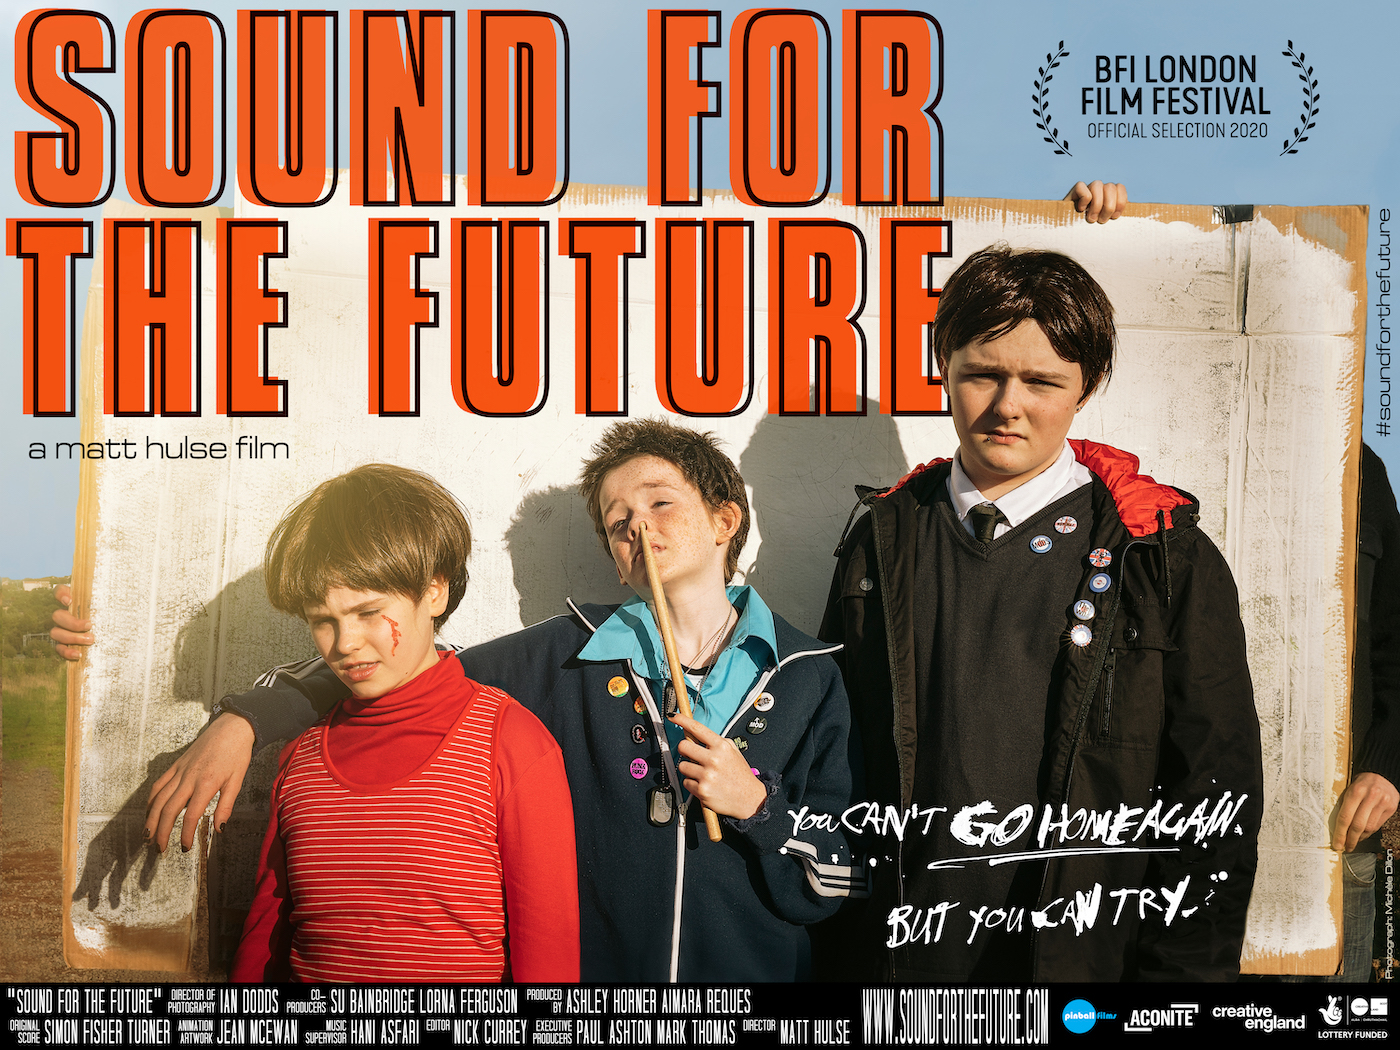 Sound for the Future: film poster with actors in costume as The Hippies